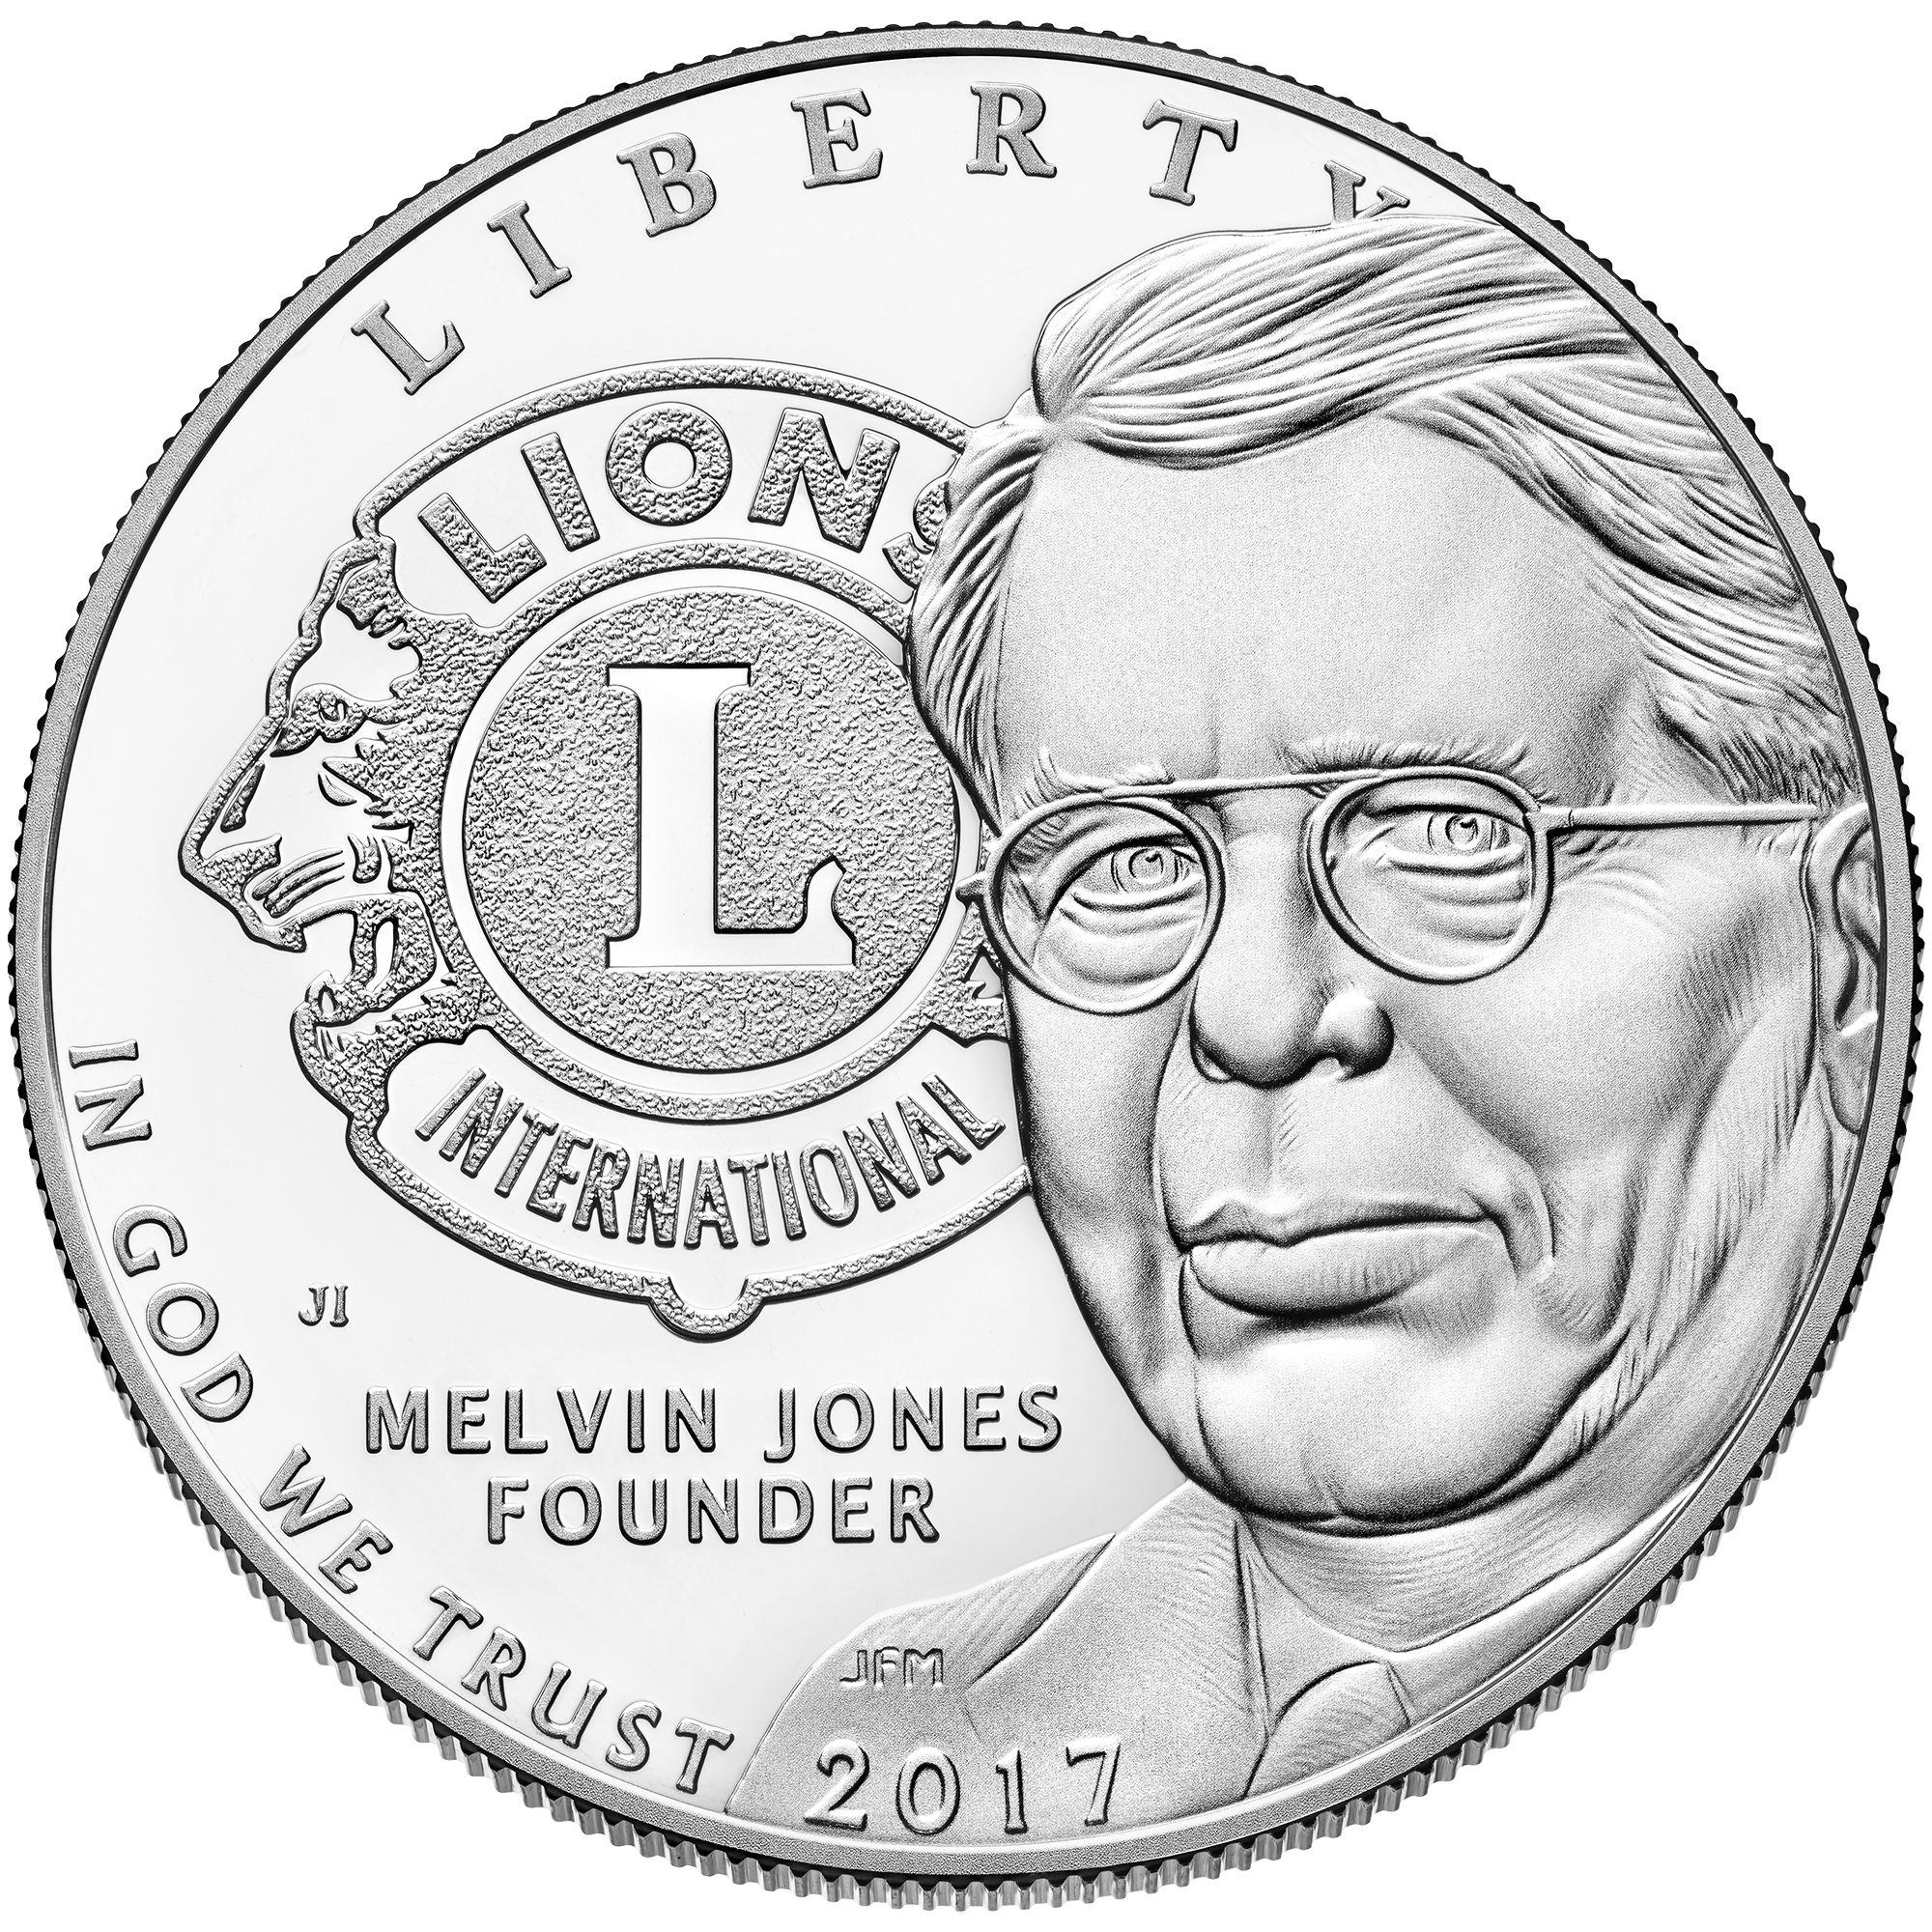 coin collectors blog a blog by coin collectors for coin collectors 1913 V Nickel 2017 lions clubs memorative silver dollar proof obverse